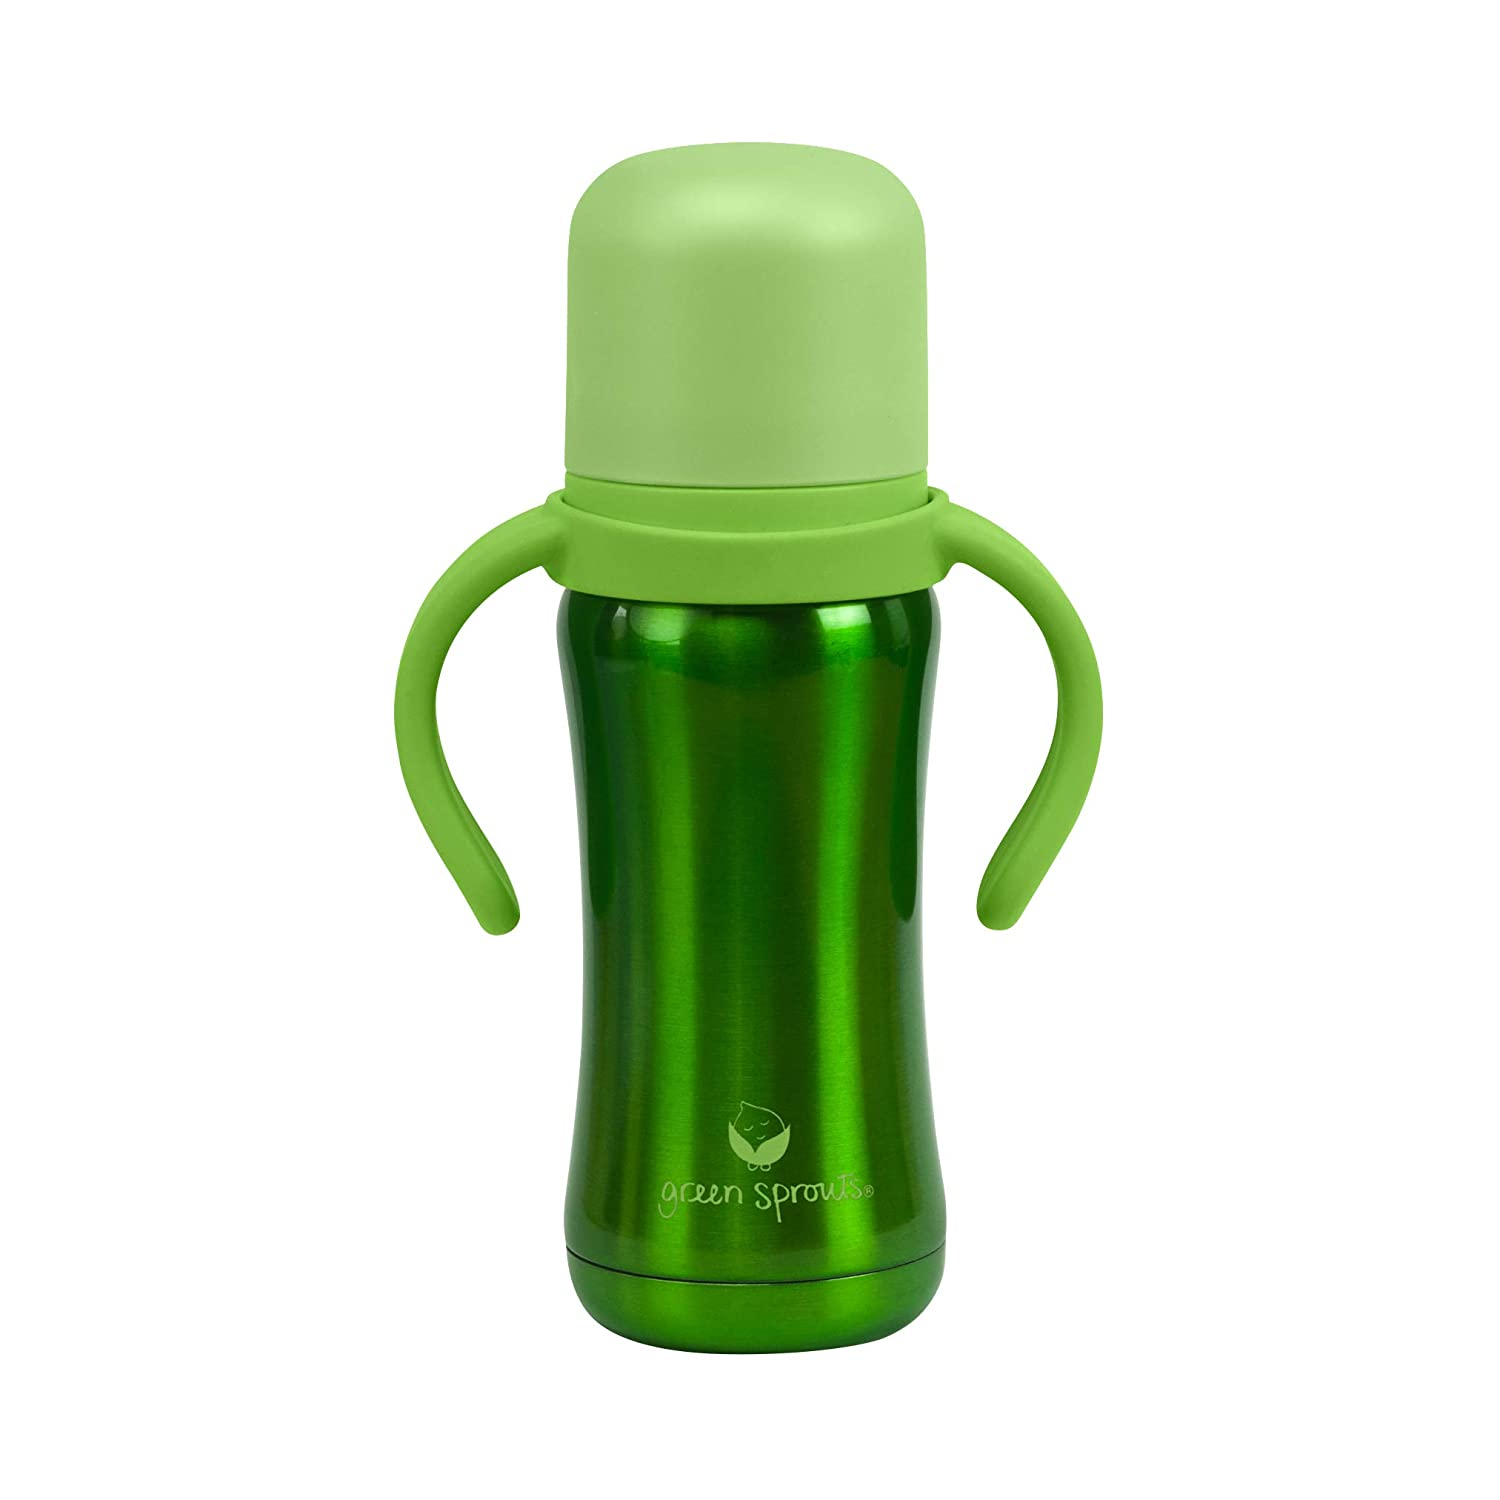 green sprouts Sippy Cup Made Steel Safe Stainless Many Trust popular brands from Non-Pet